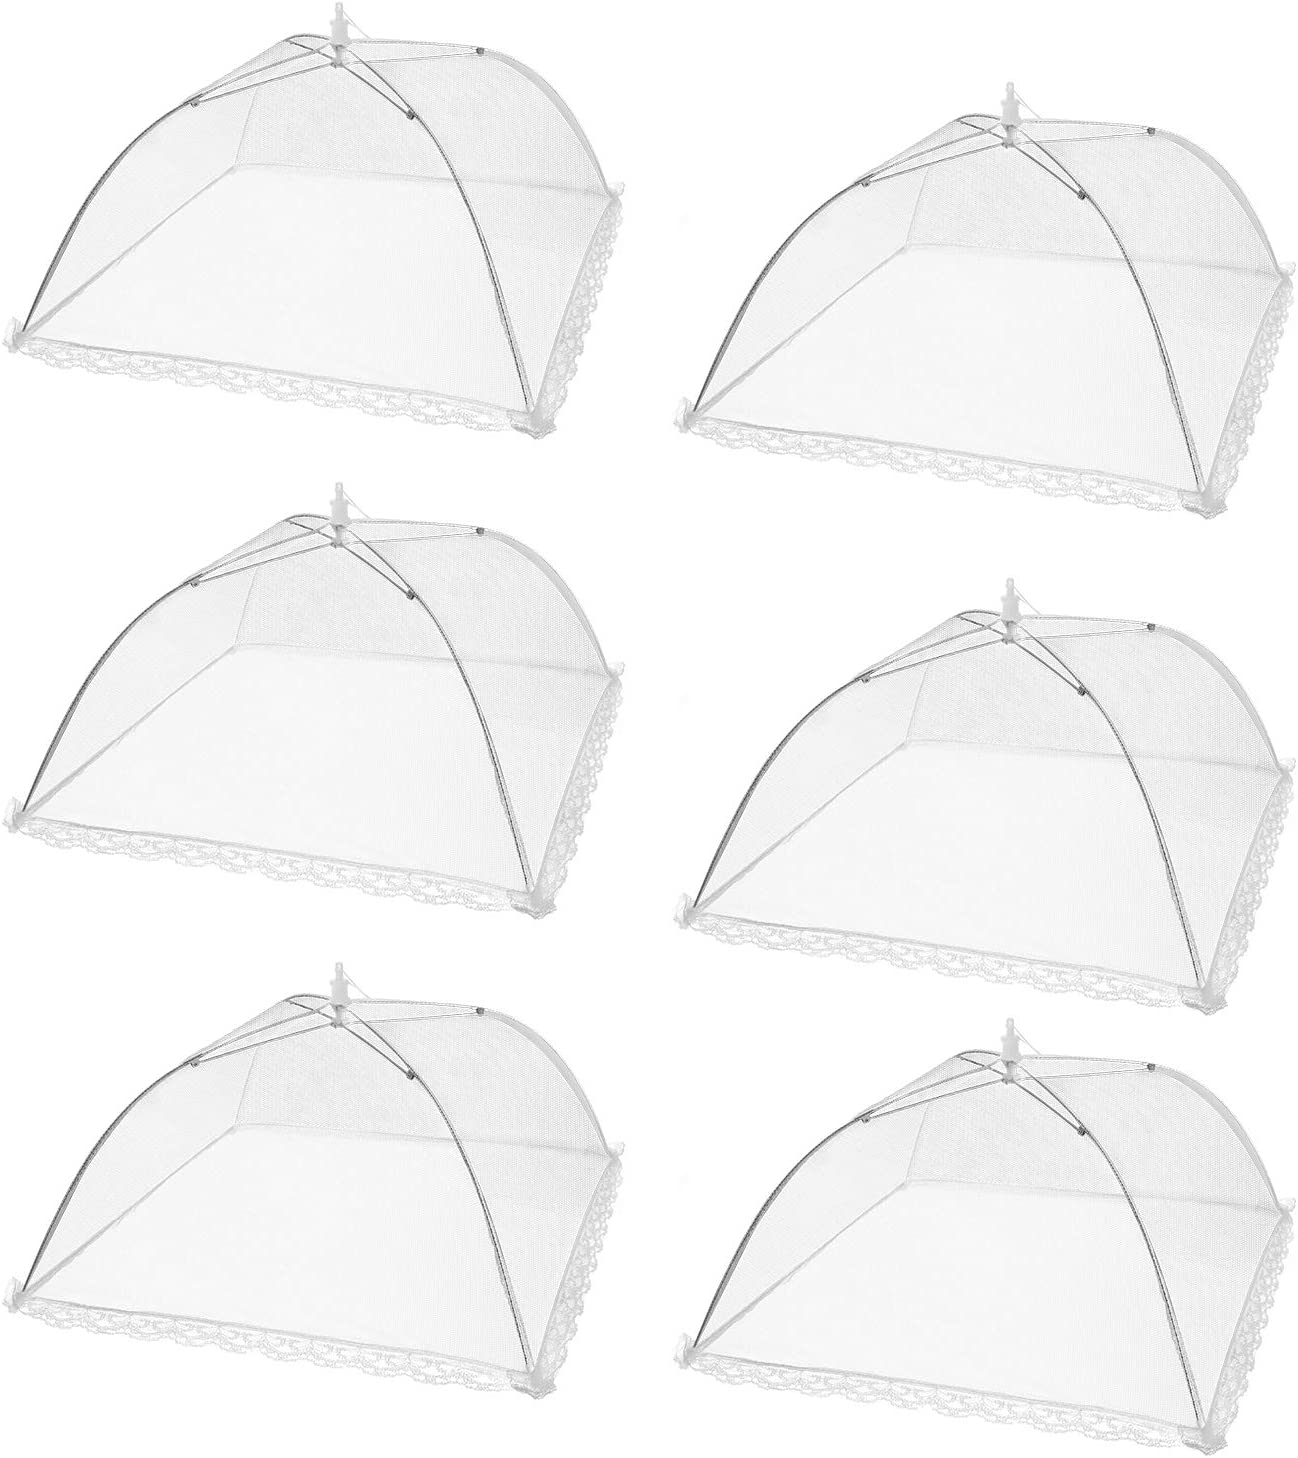 Armear 6 pack Large Pop-Up Mesh Food Cover Tent, 17 Inches Food Protector Covers Reusable and Collapsible Outdoor Picnic Food Covers Tent For Bugs, Parties Picnics, BBQs (White)